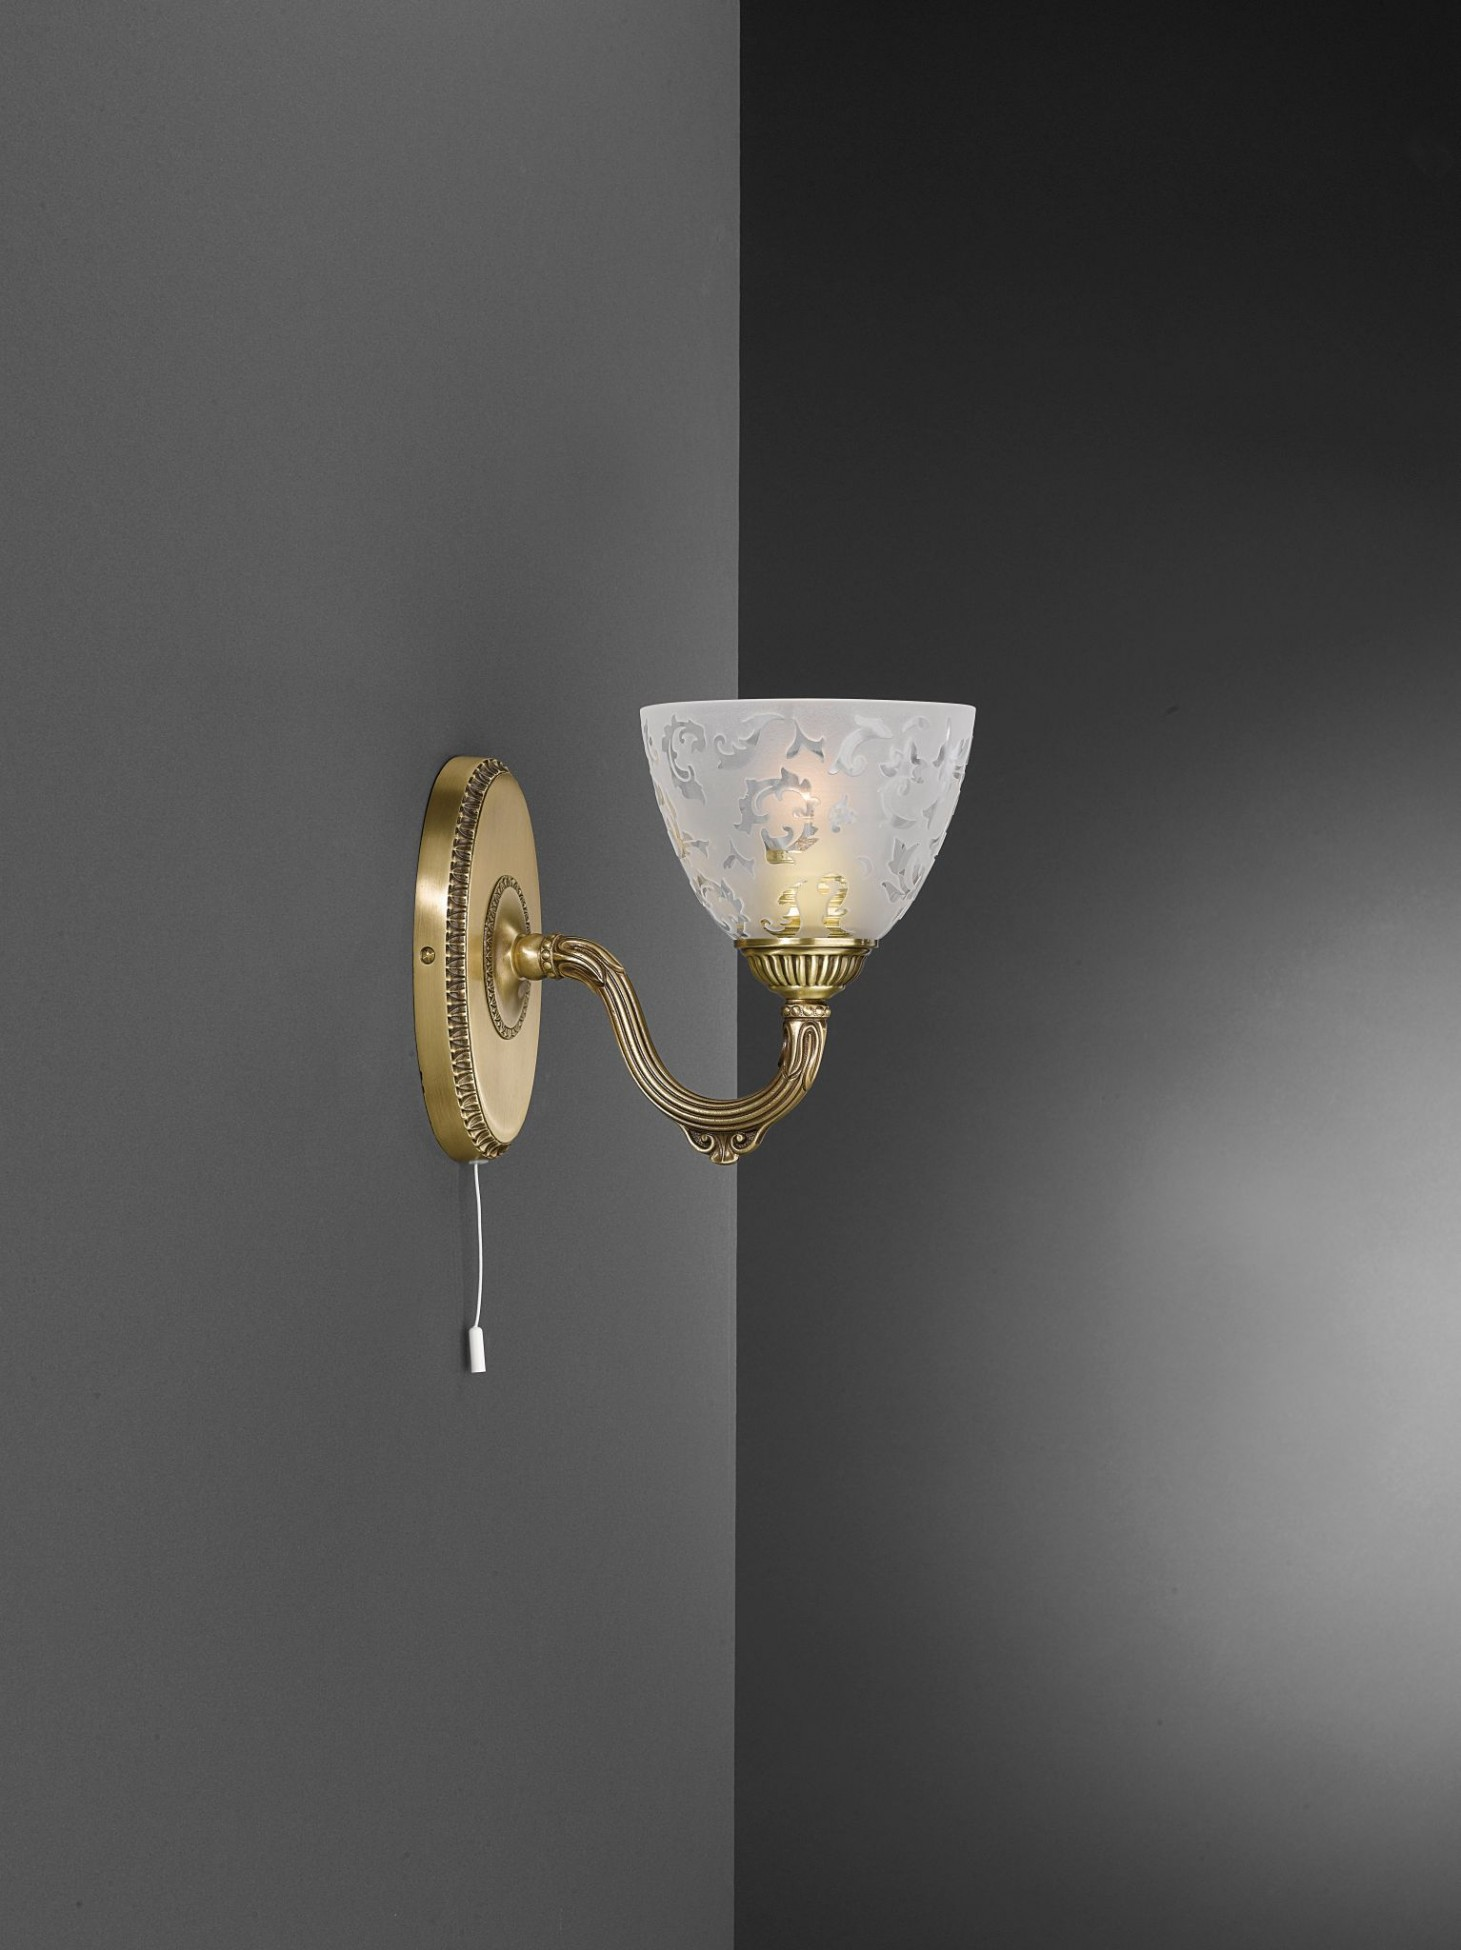 Wall Sconce Frosted Glass : 1 light brass wall sconce with frosted glass facing upward Reccagni Store